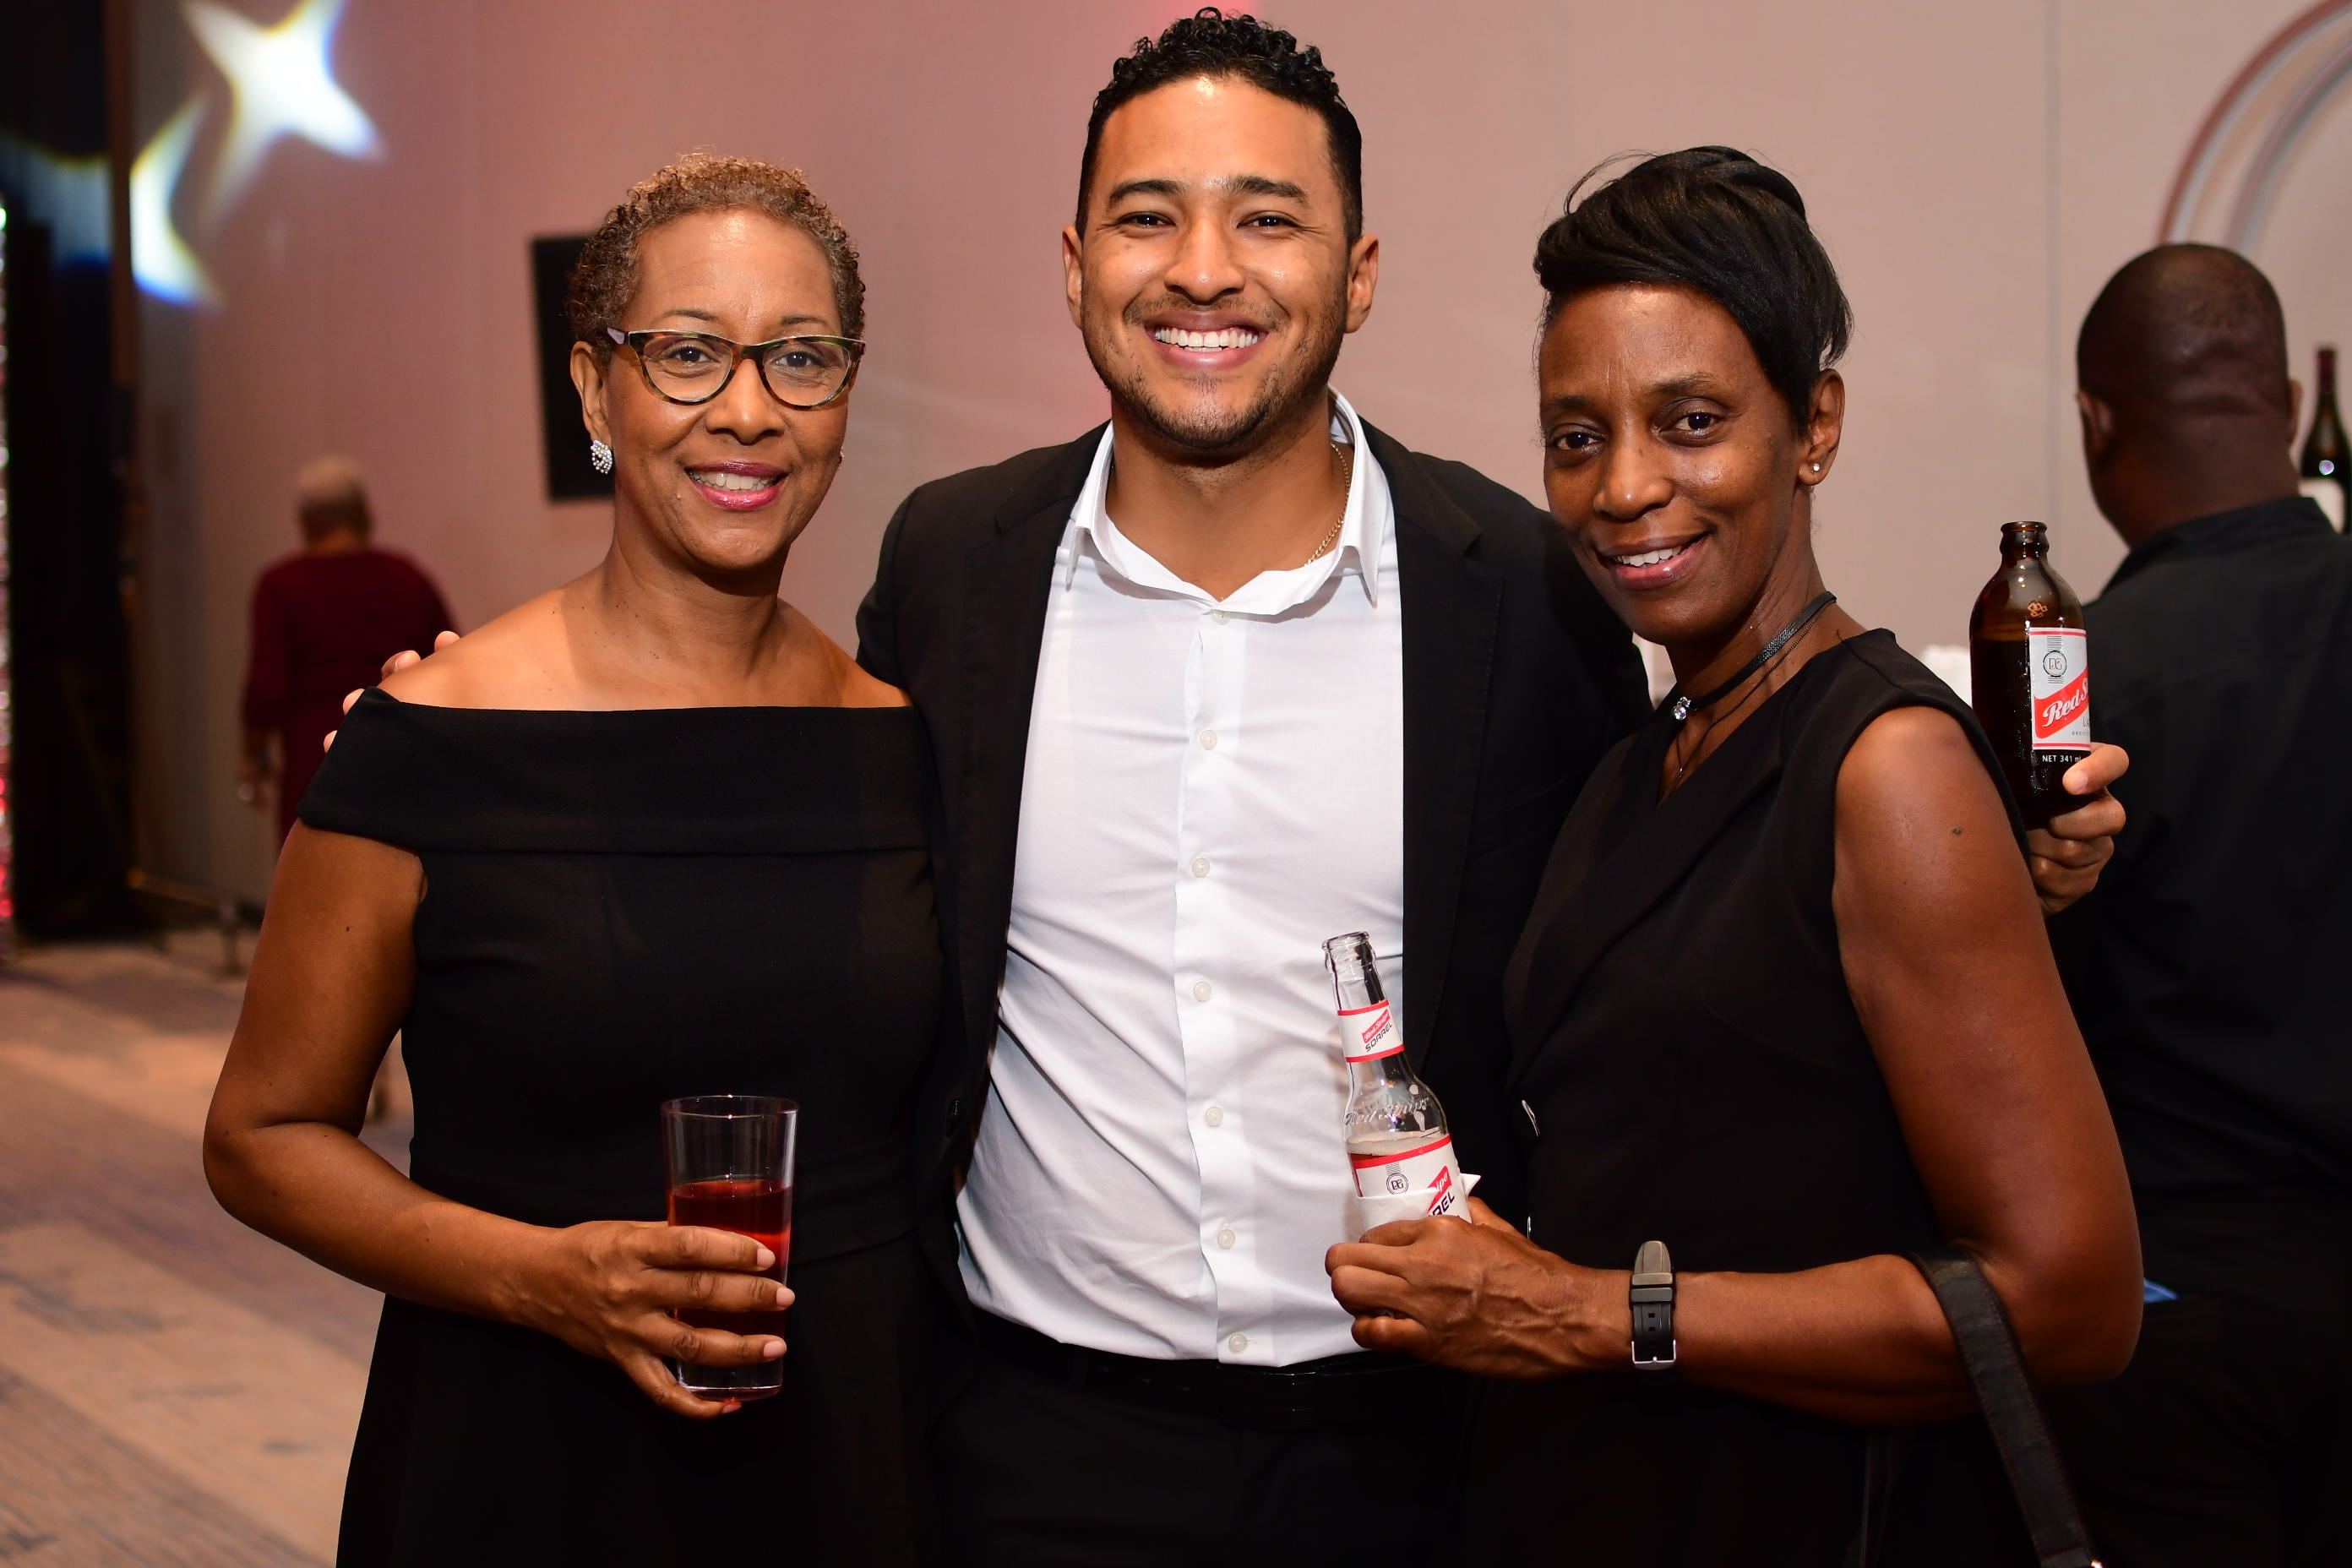 Red Stripe team members (from left) Caroline Kelly, merchandising manager; Andrew Anguin, brand manager, Red Stripe and Innovation; and Ladene Jones-Mitchell, commerce & support services administrator, drink and party responsibly.